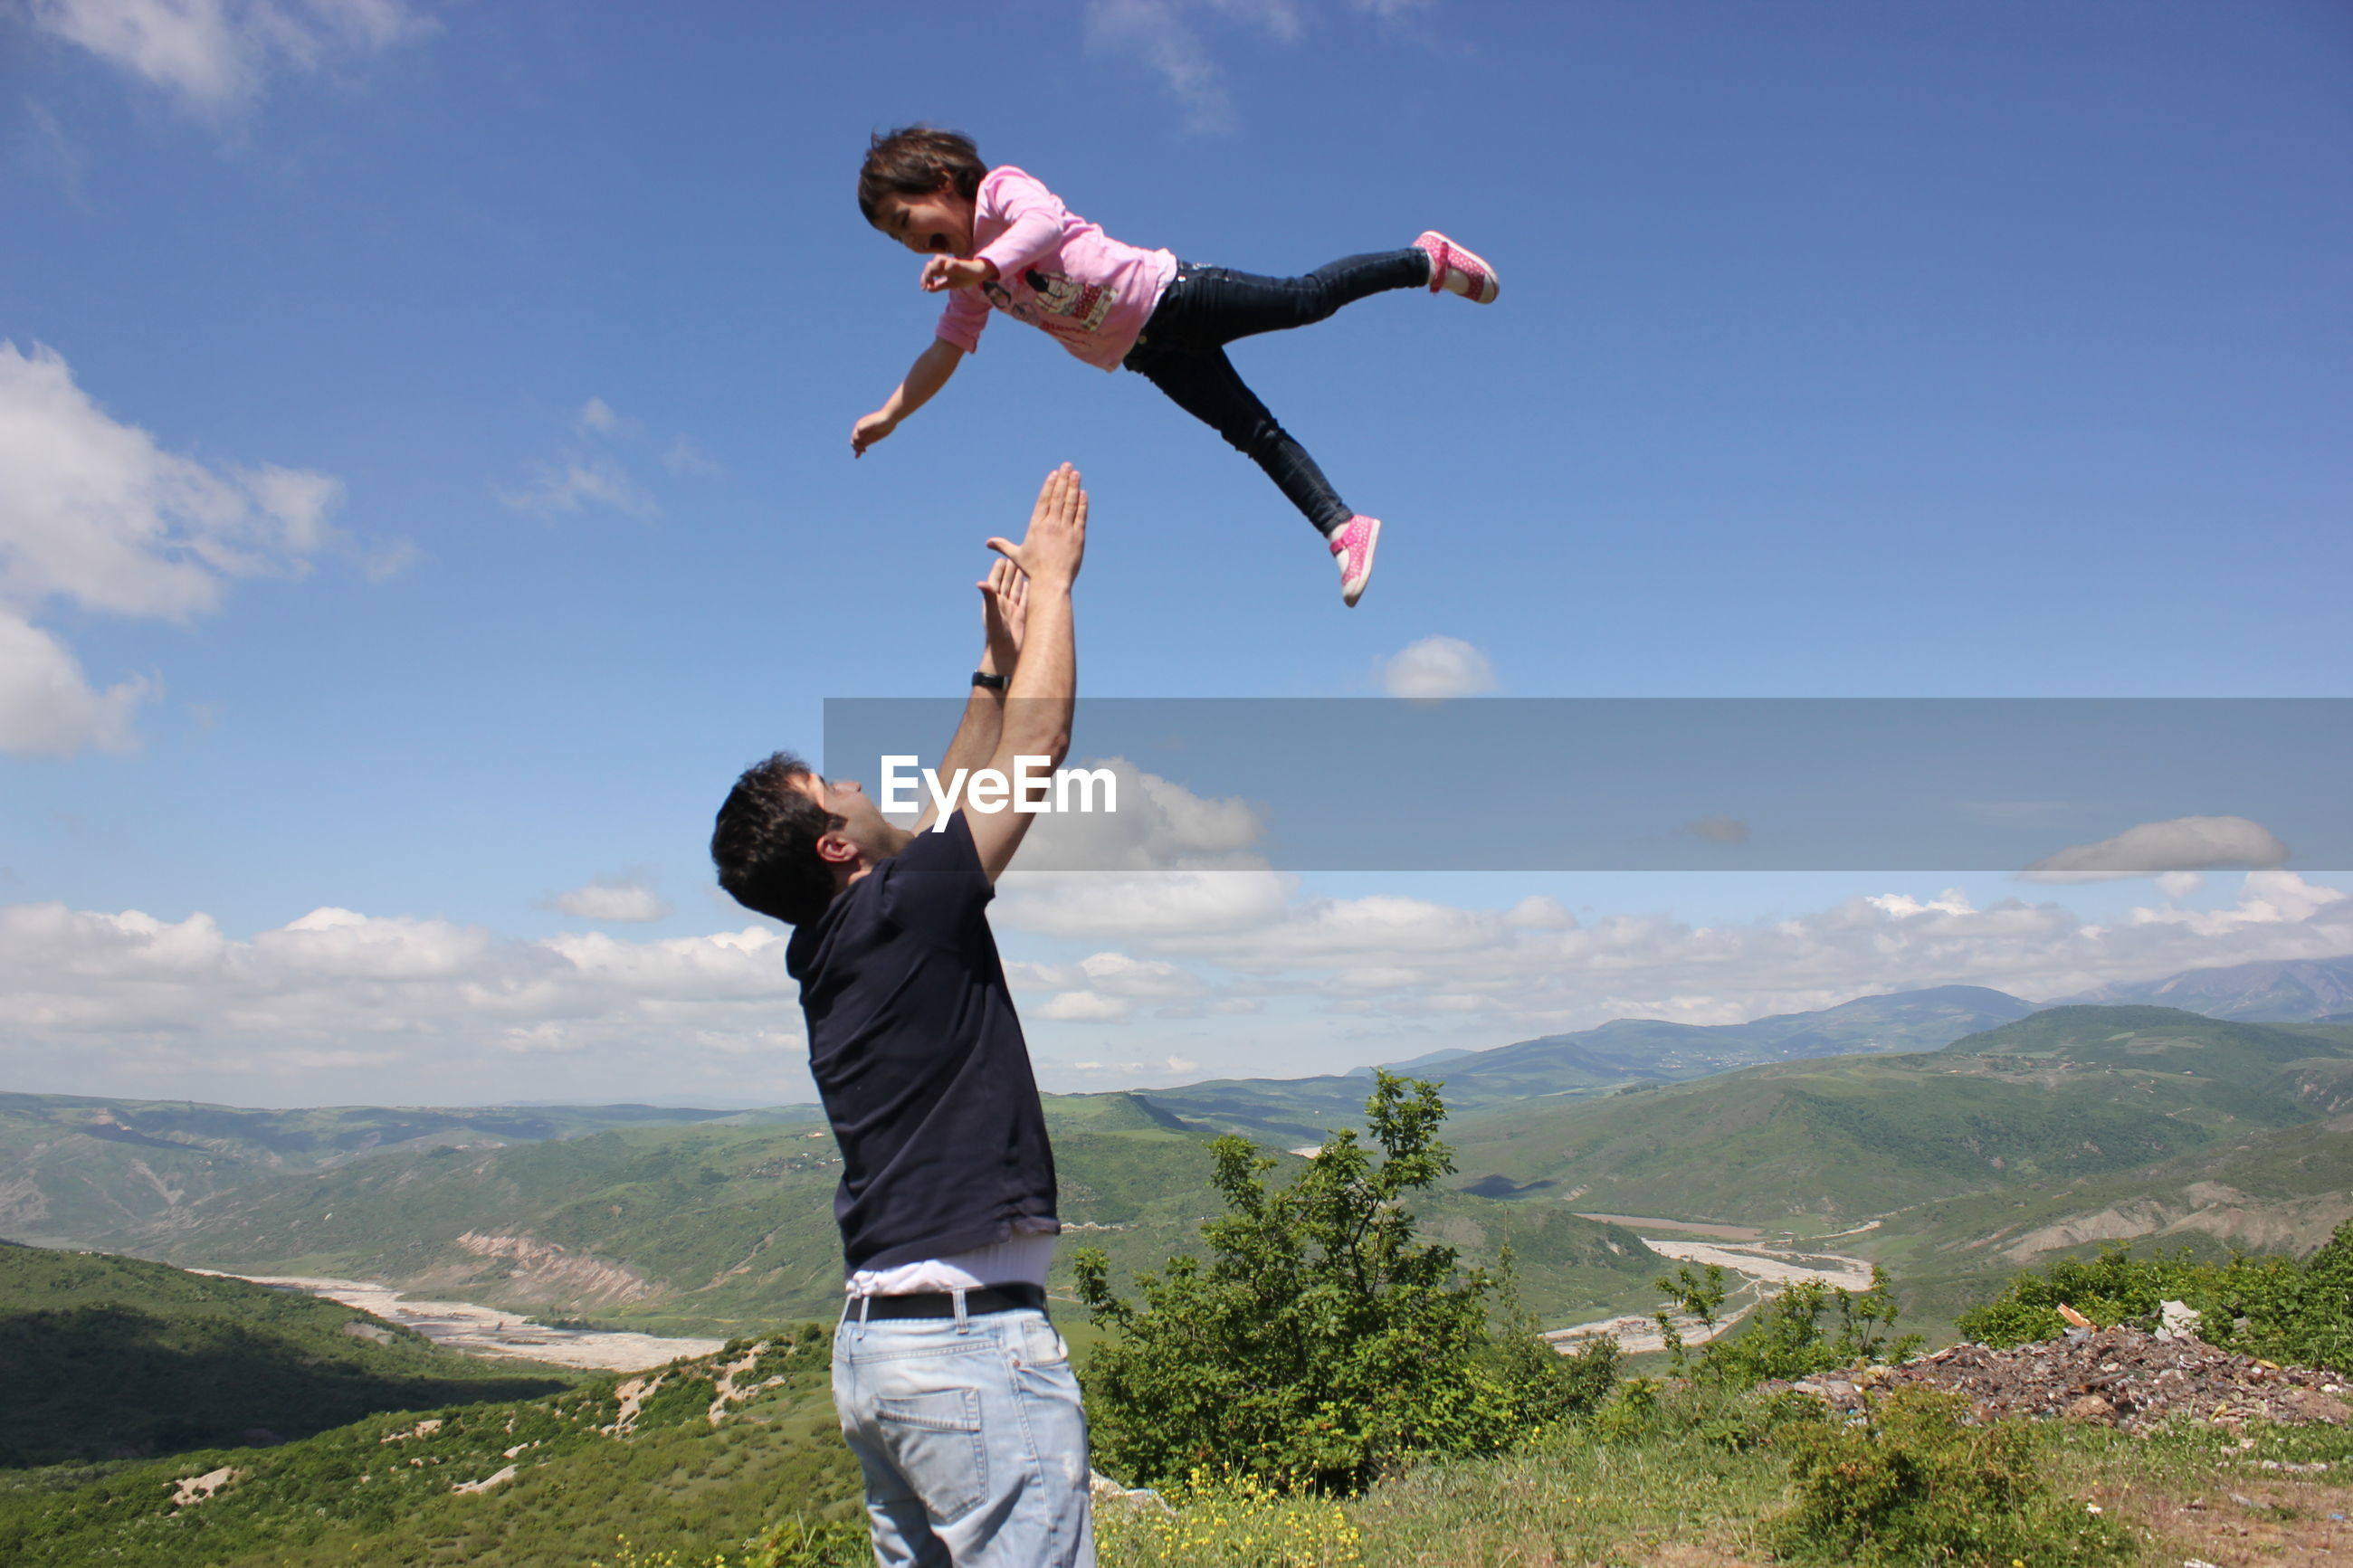 FULL LENGTH OF MAN WITH ARMS RAISED AGAINST MOUNTAIN